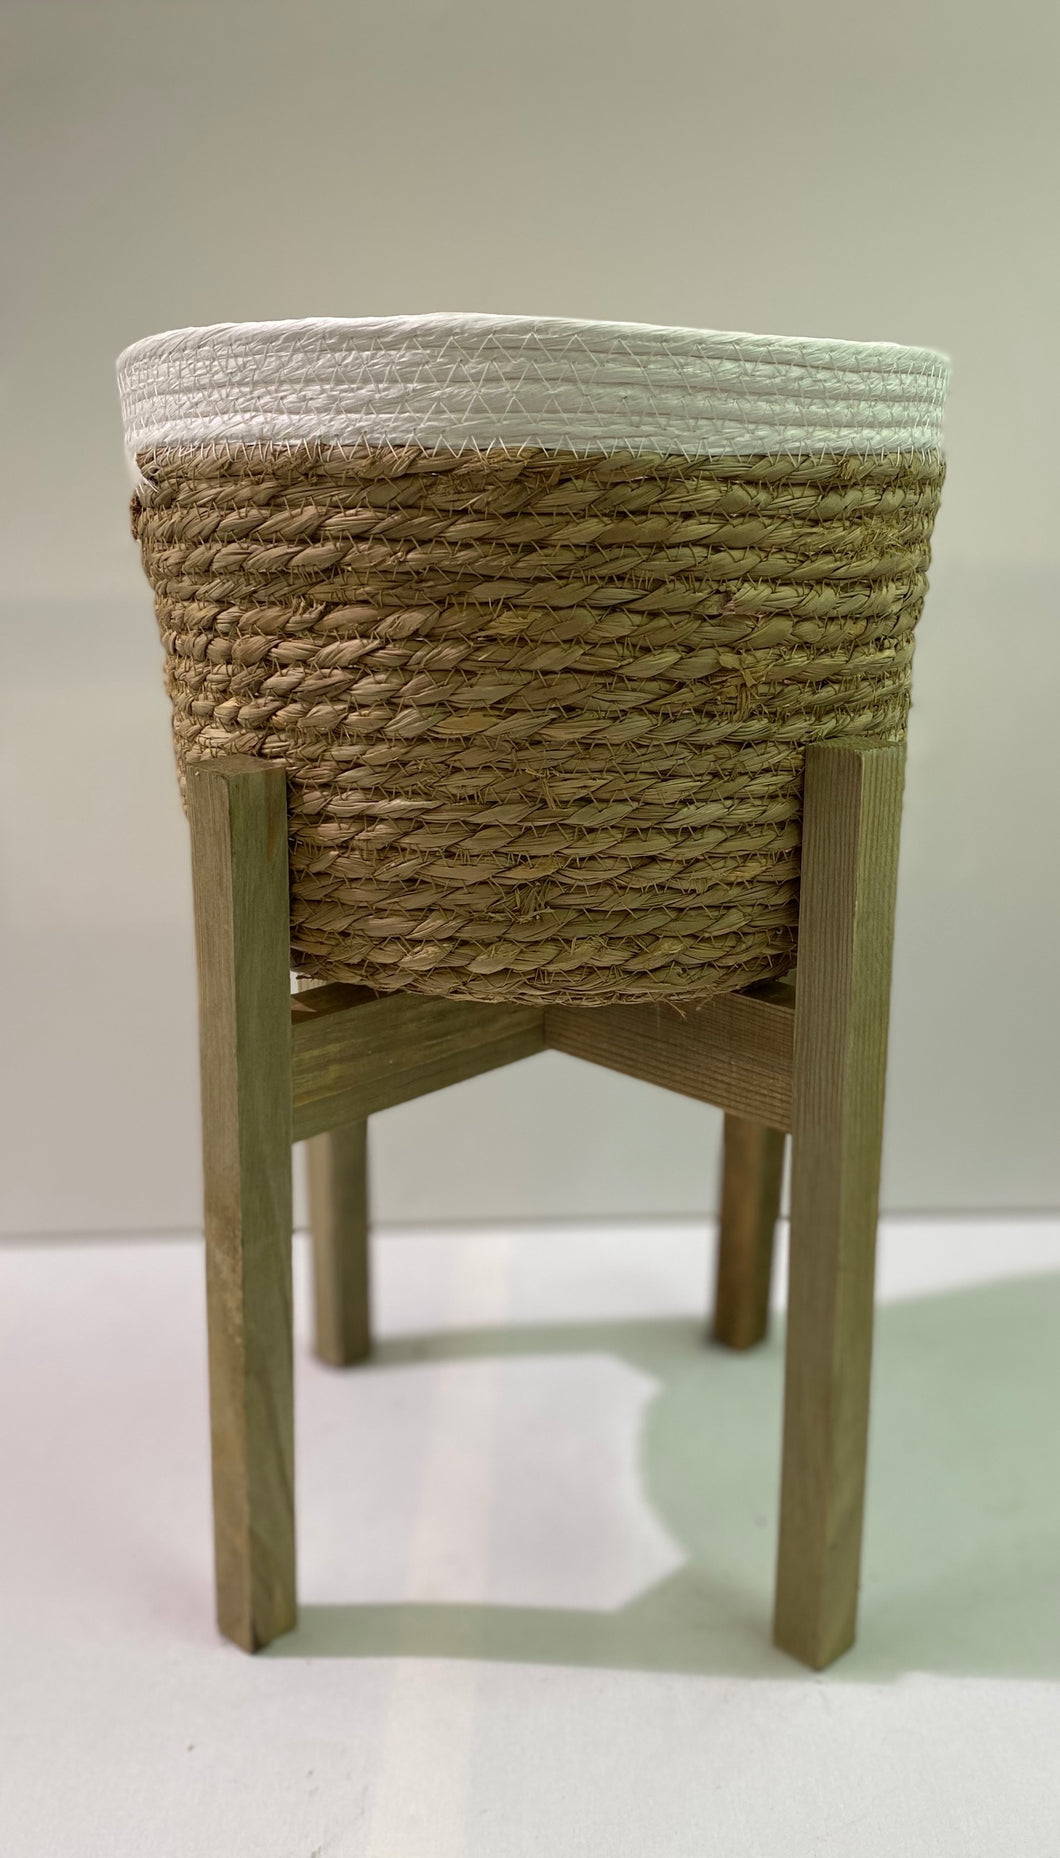 Planter Basket on Stand - Small